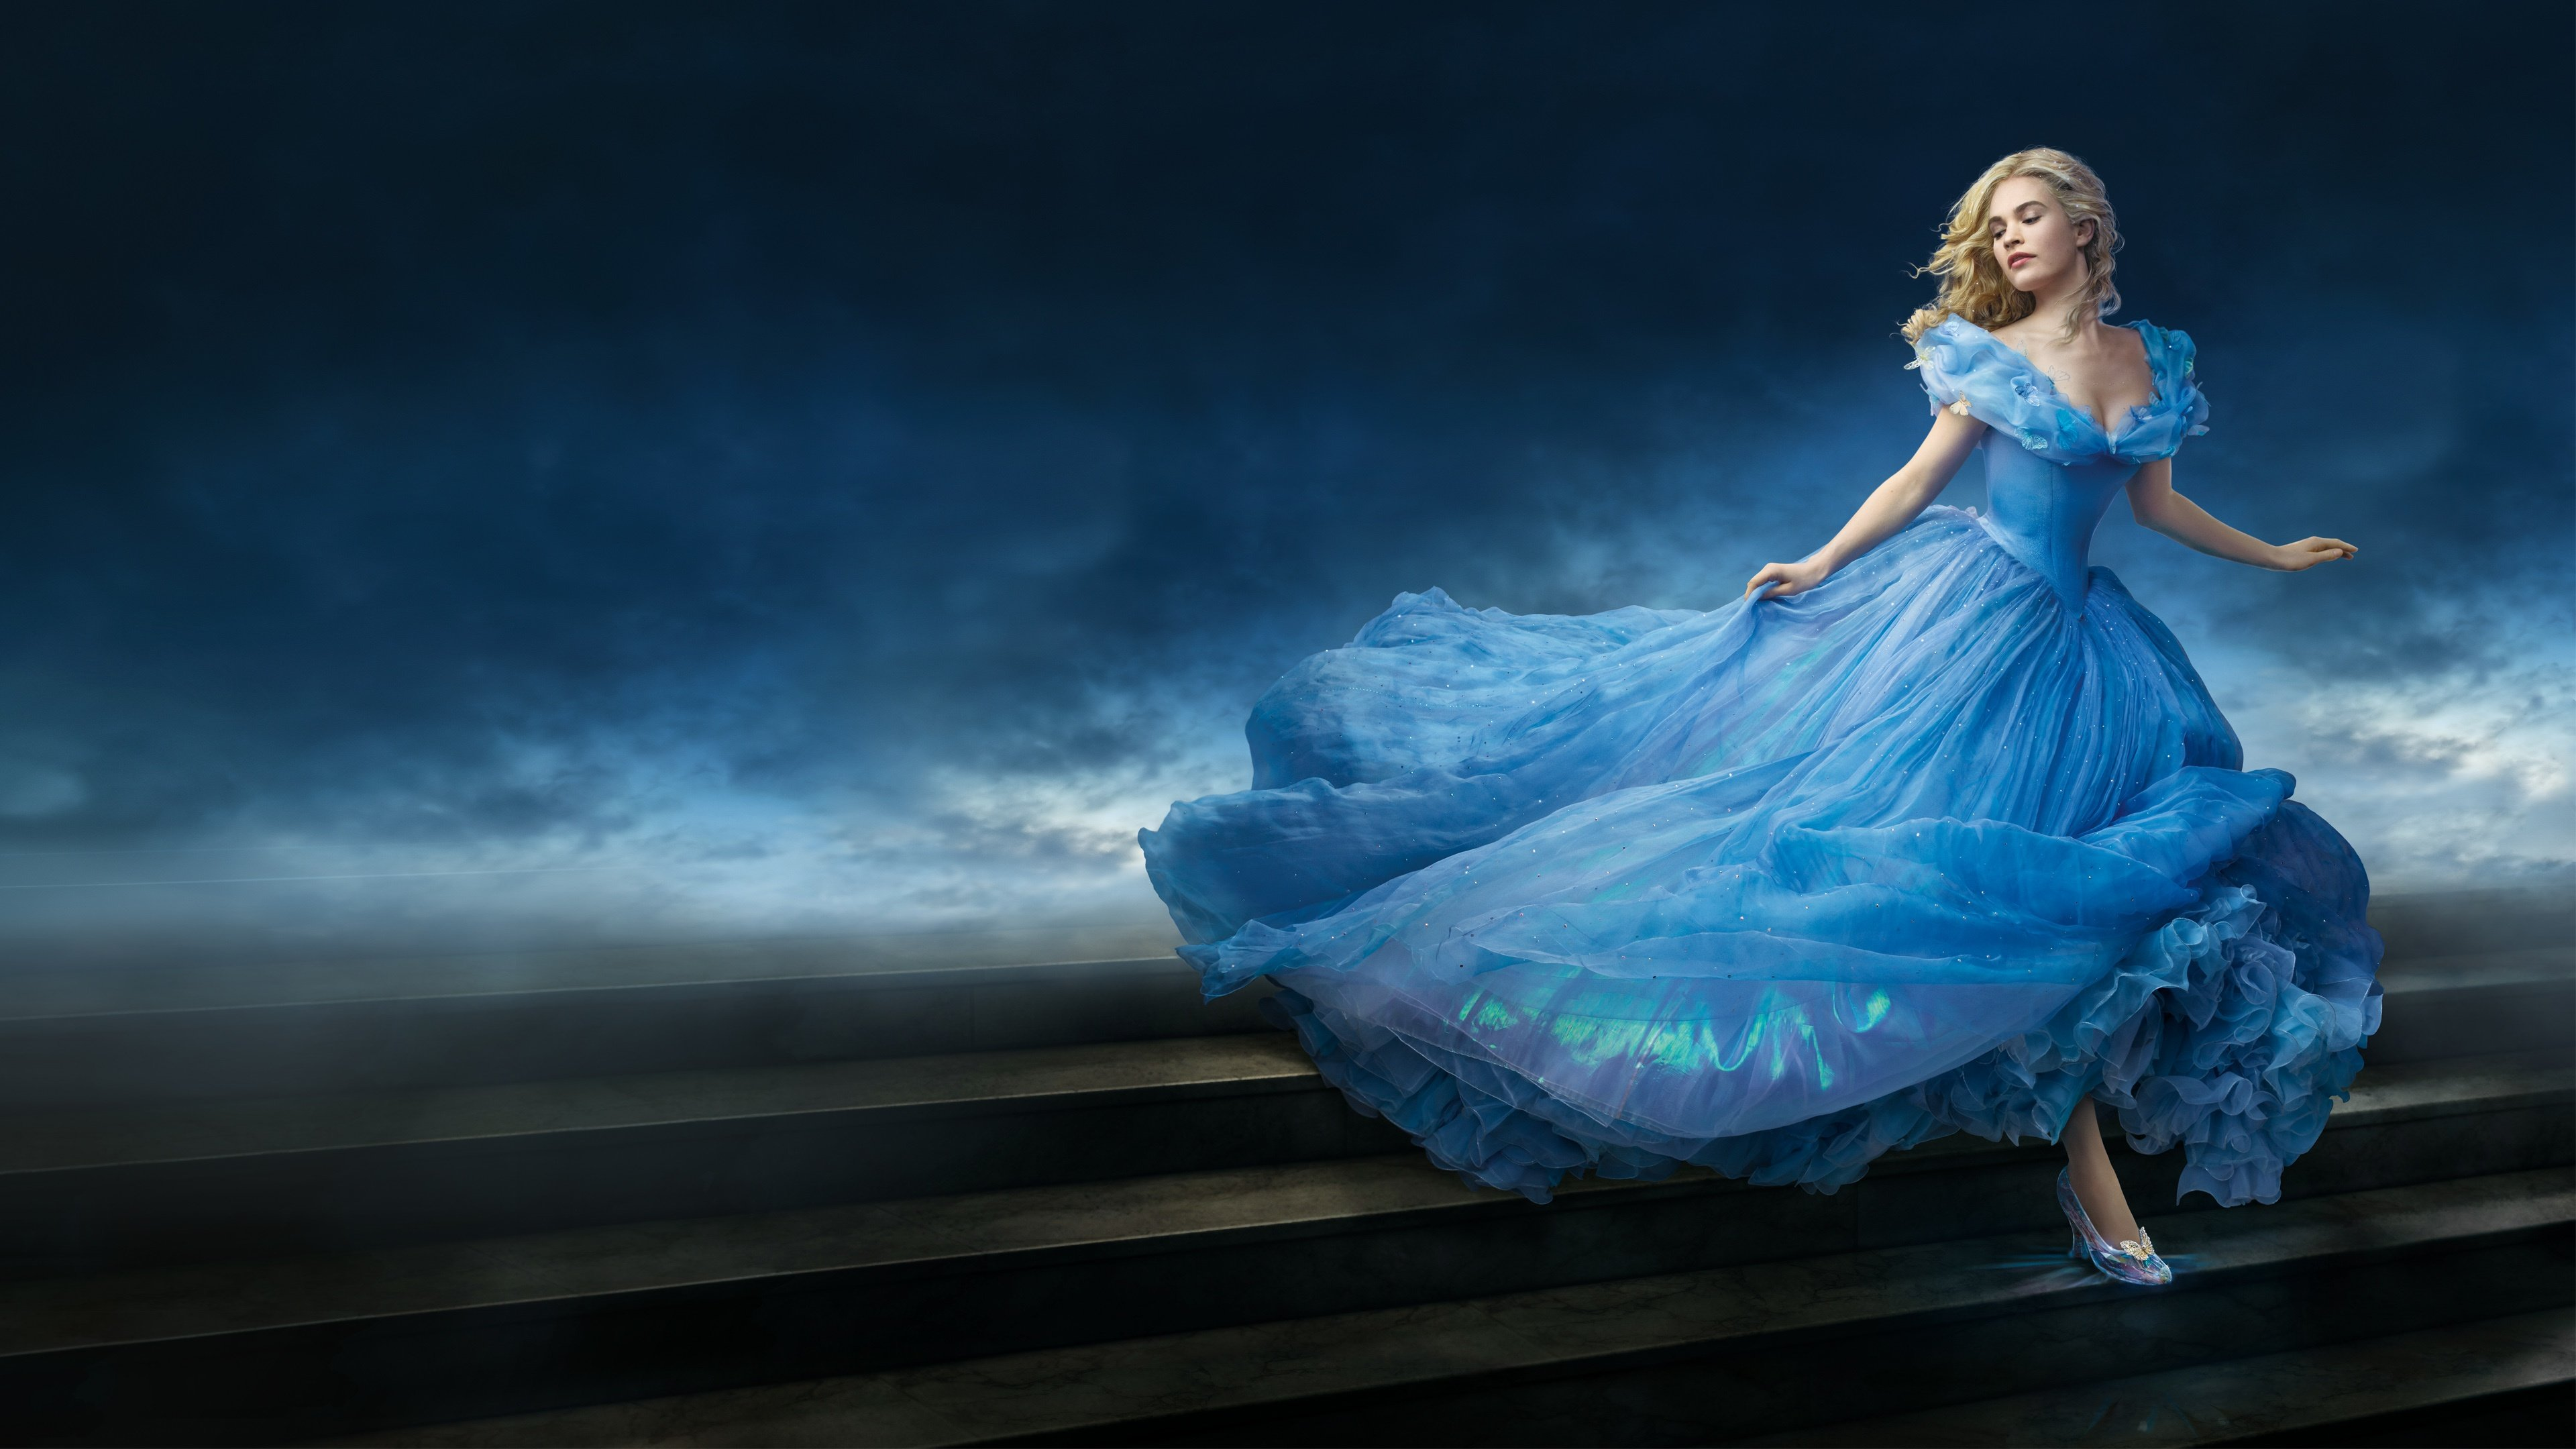 Lily James as Cinderella Wallpapers HD Wallpapers 3840x2160